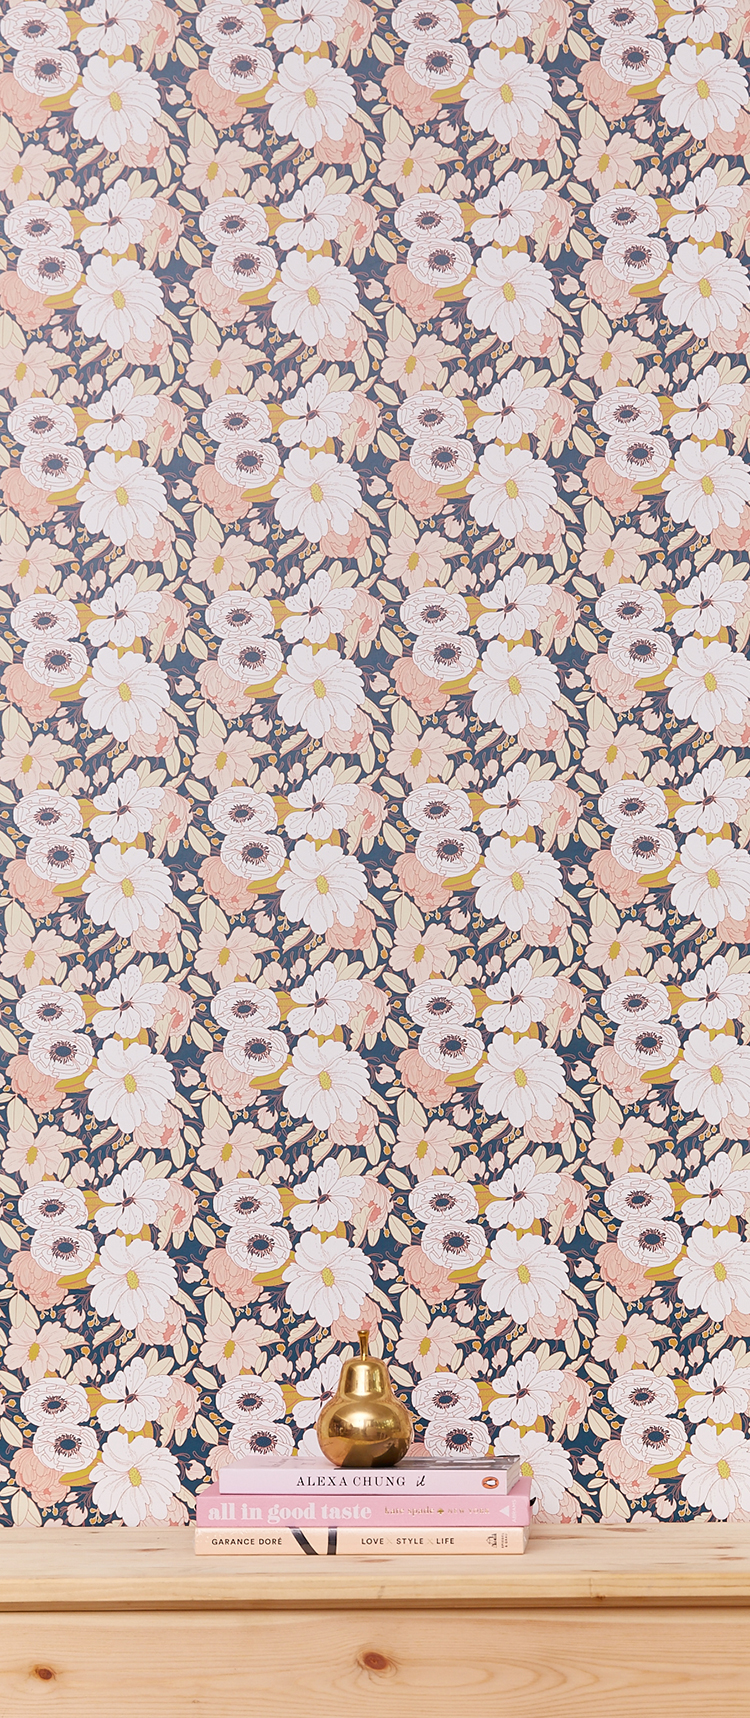 Calling all pattern lovers! I've been feeling all sorts of prints lately, from abstract to geometric to florals... check out my favorite patterns for home decor on the blog today: jojotastic.com (especially loving these floral wallpapers from @chasingpapernyc + they are removable!)